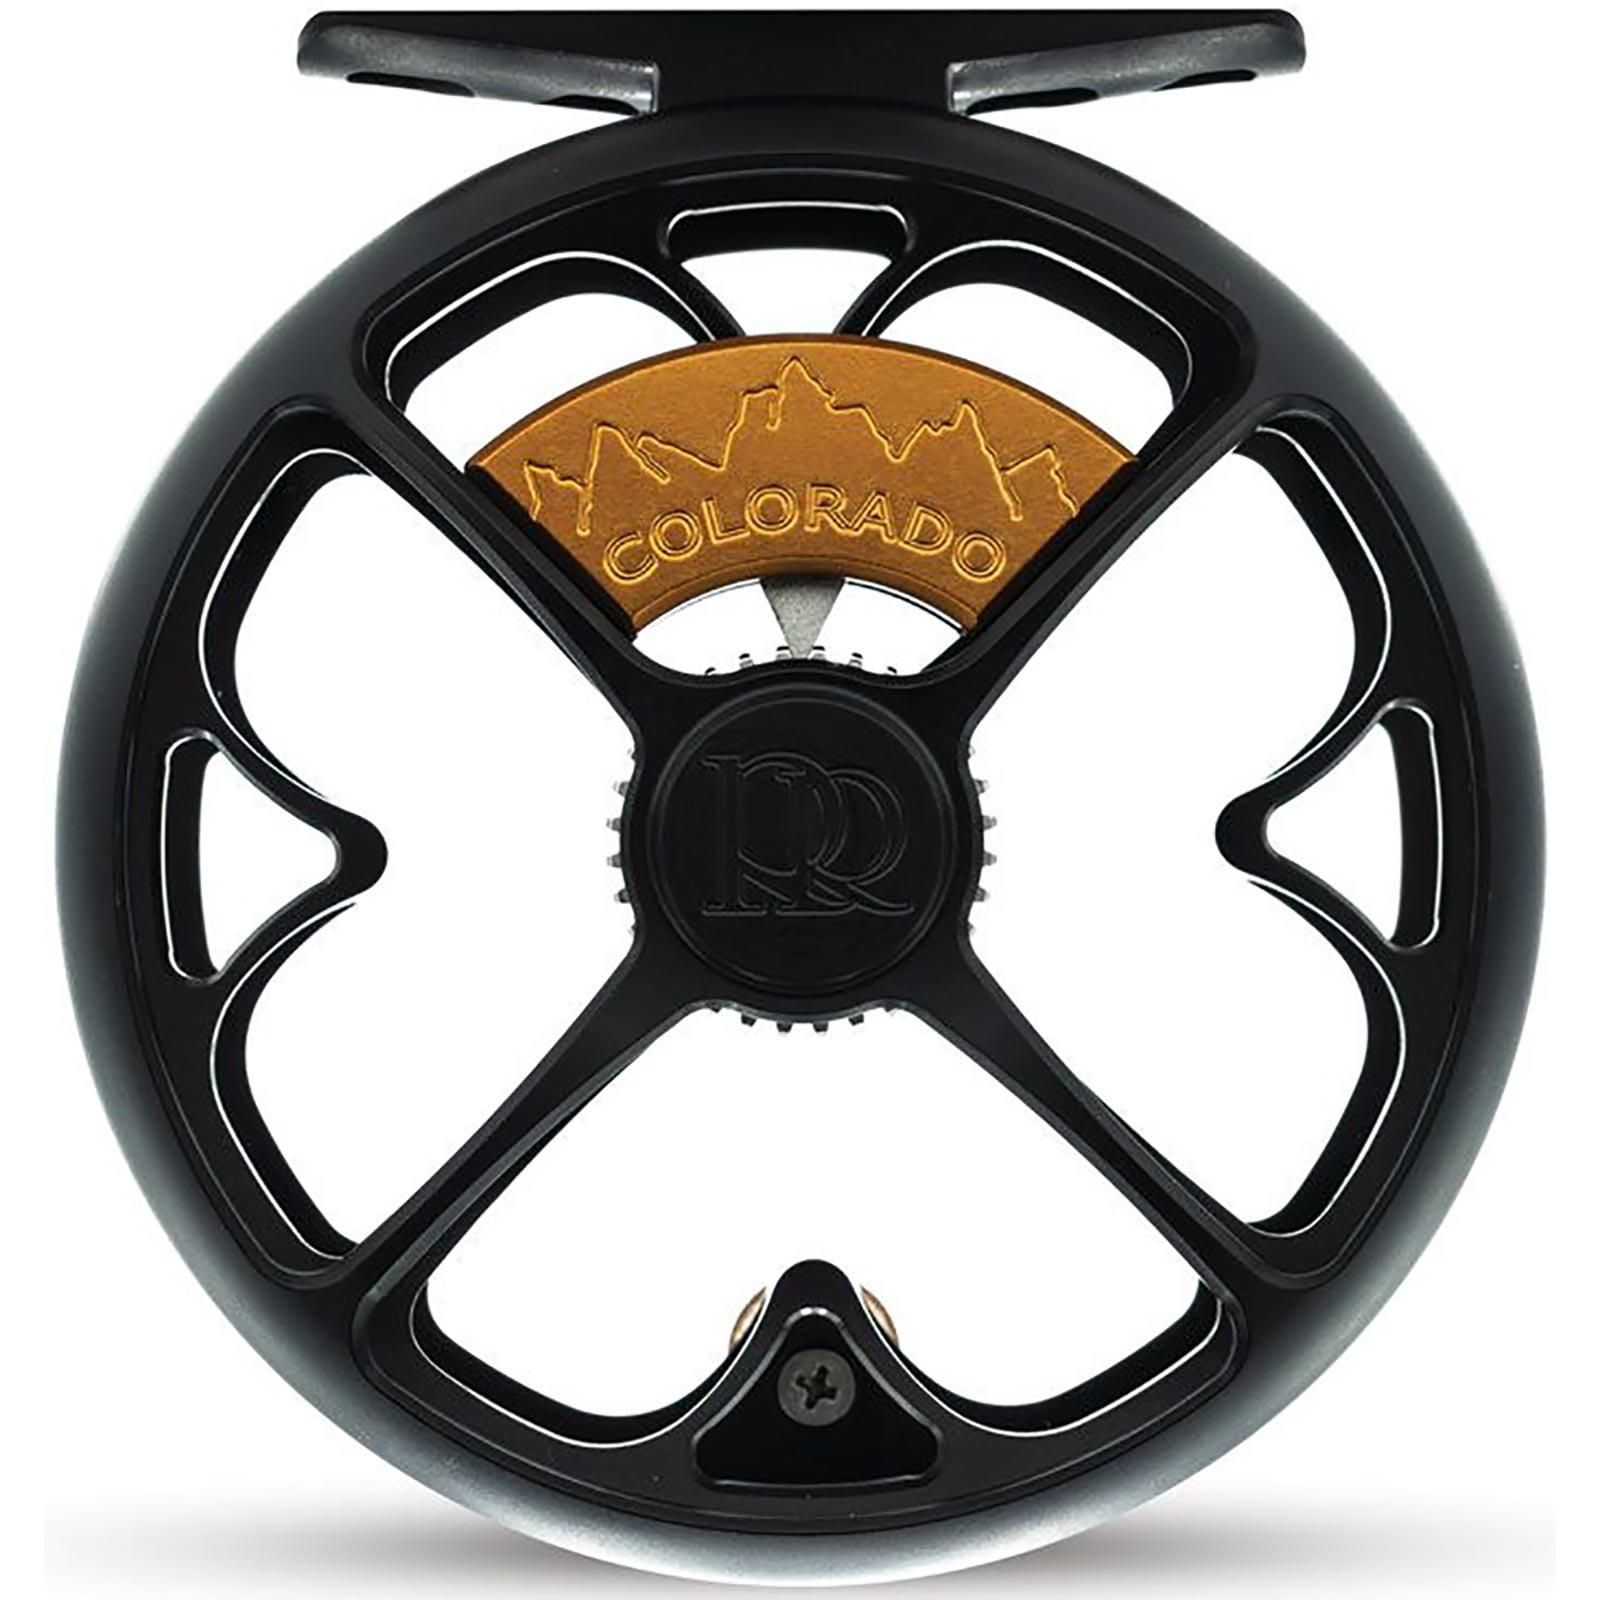 COLORADO 2-3 REEL - MATTE BLACK